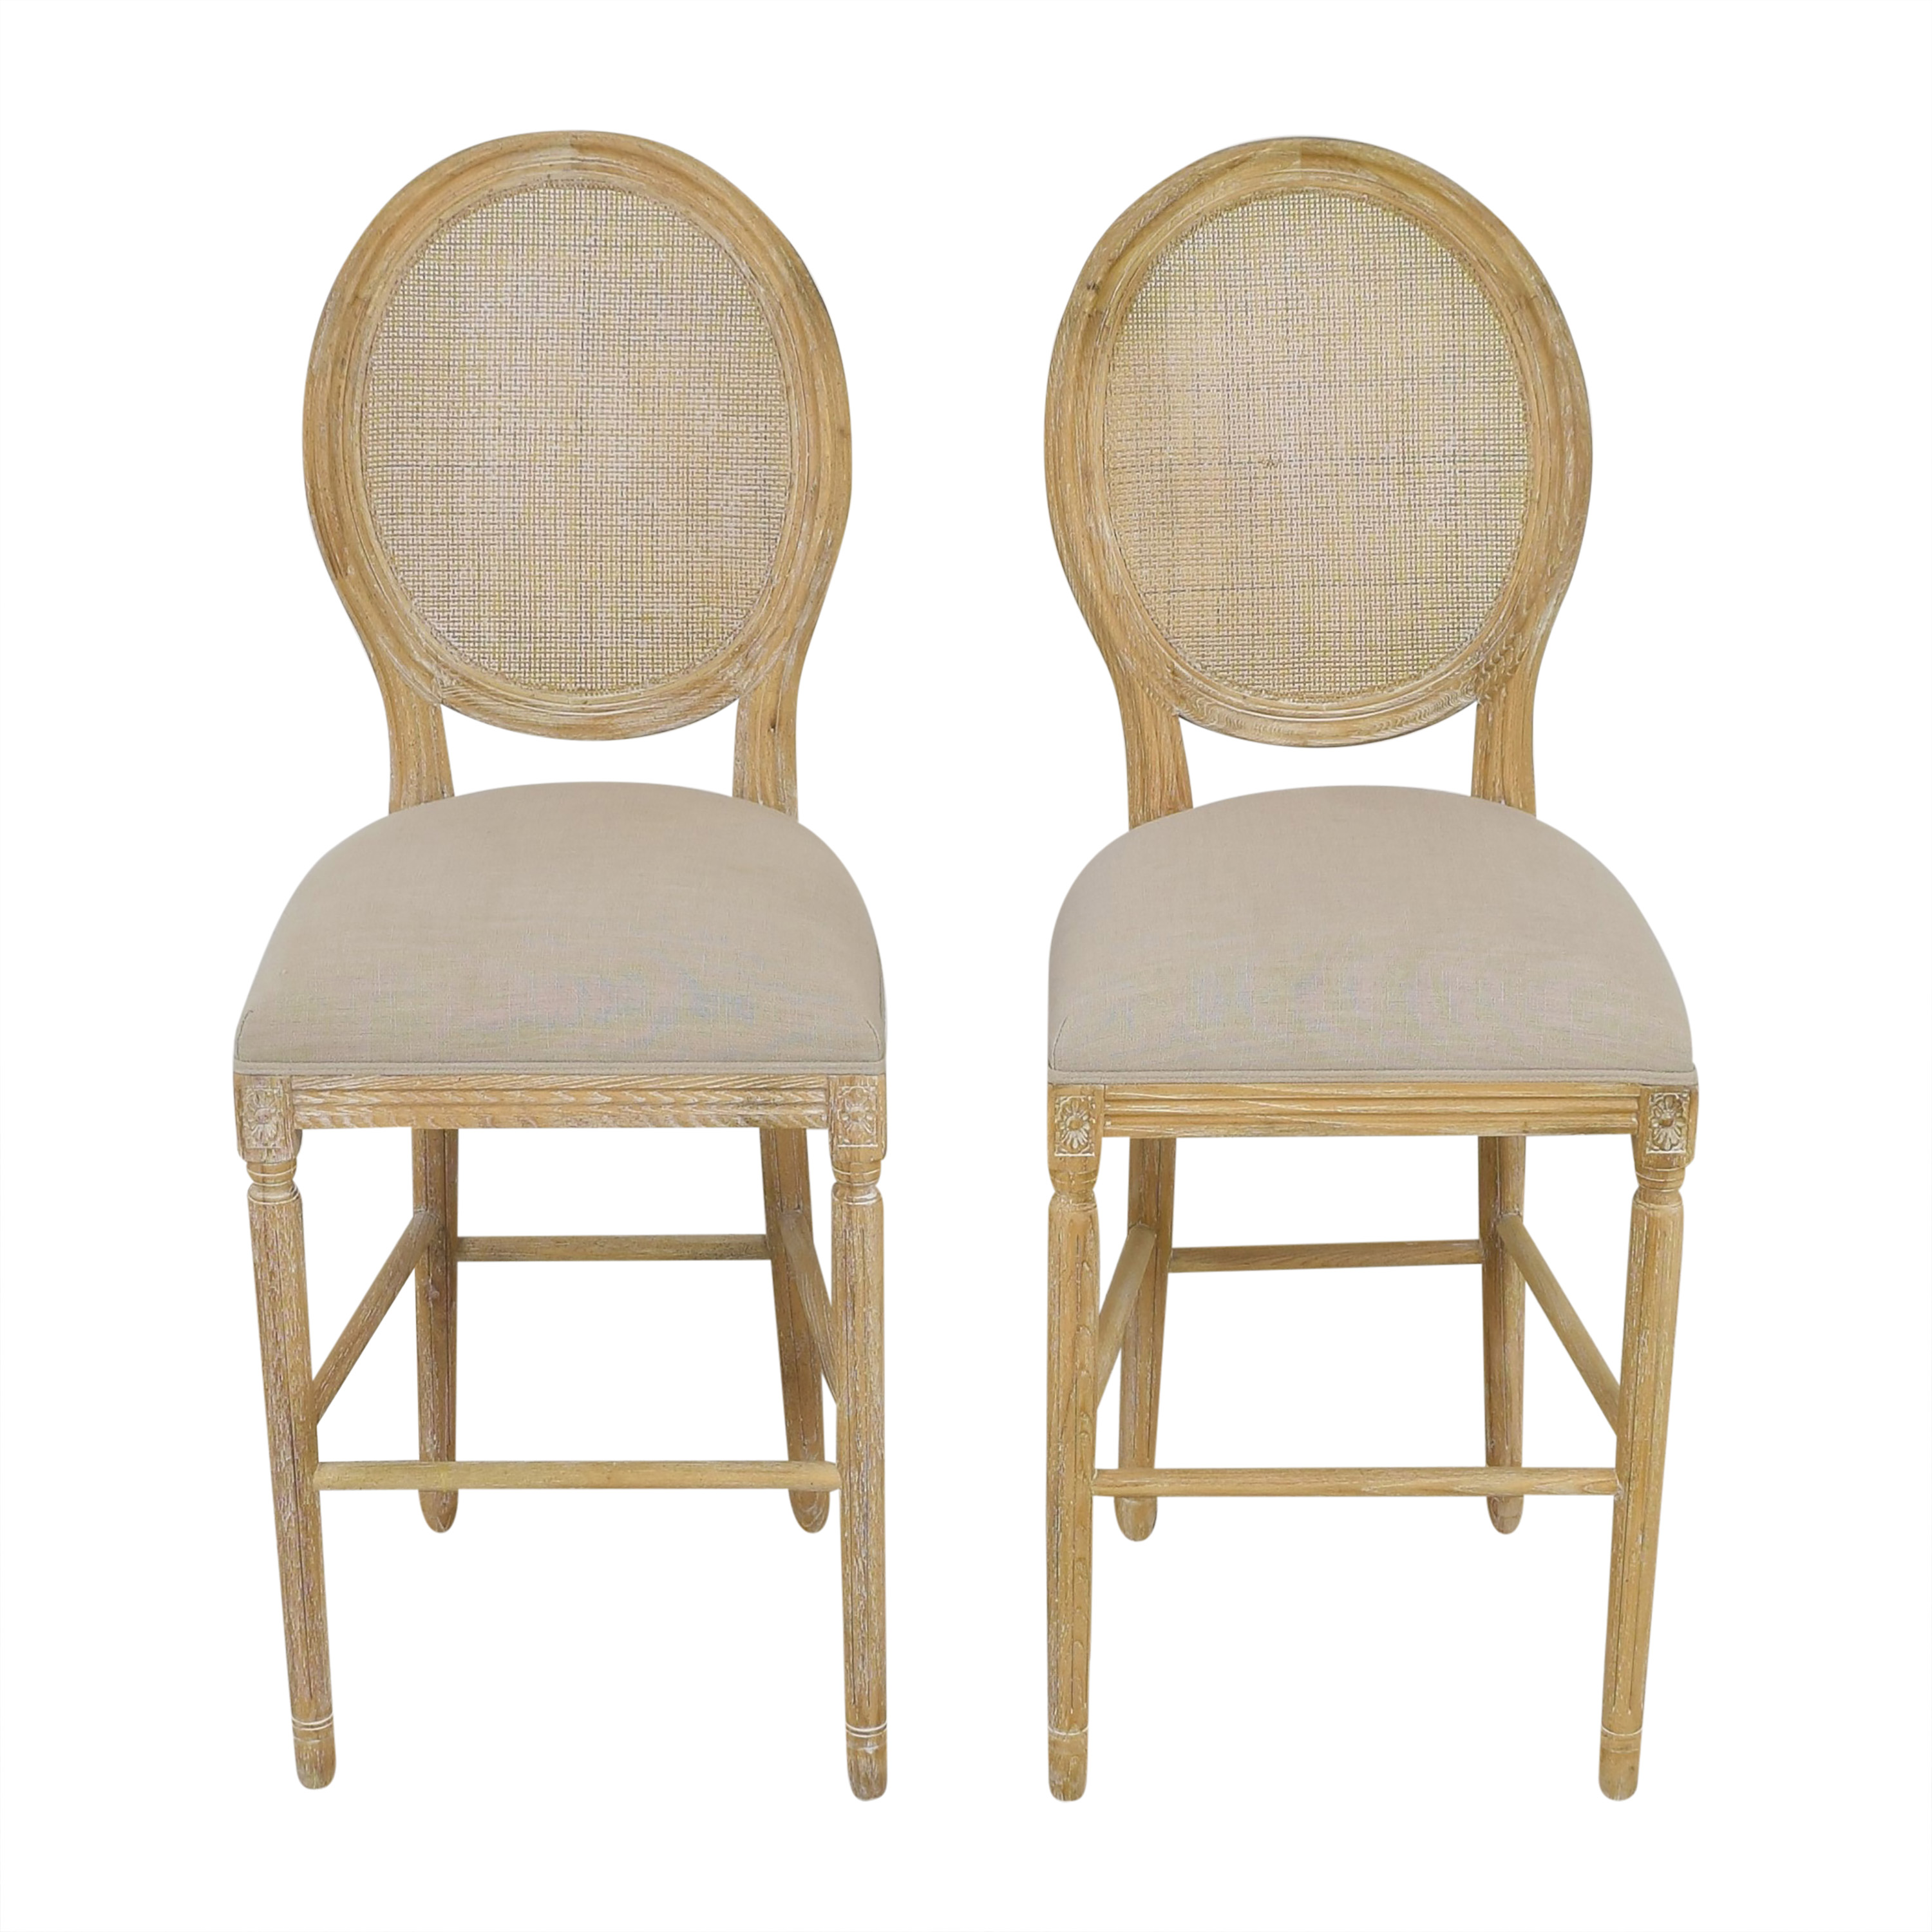 Wisteria Wisteria Upholstered Bar Stools Chairs